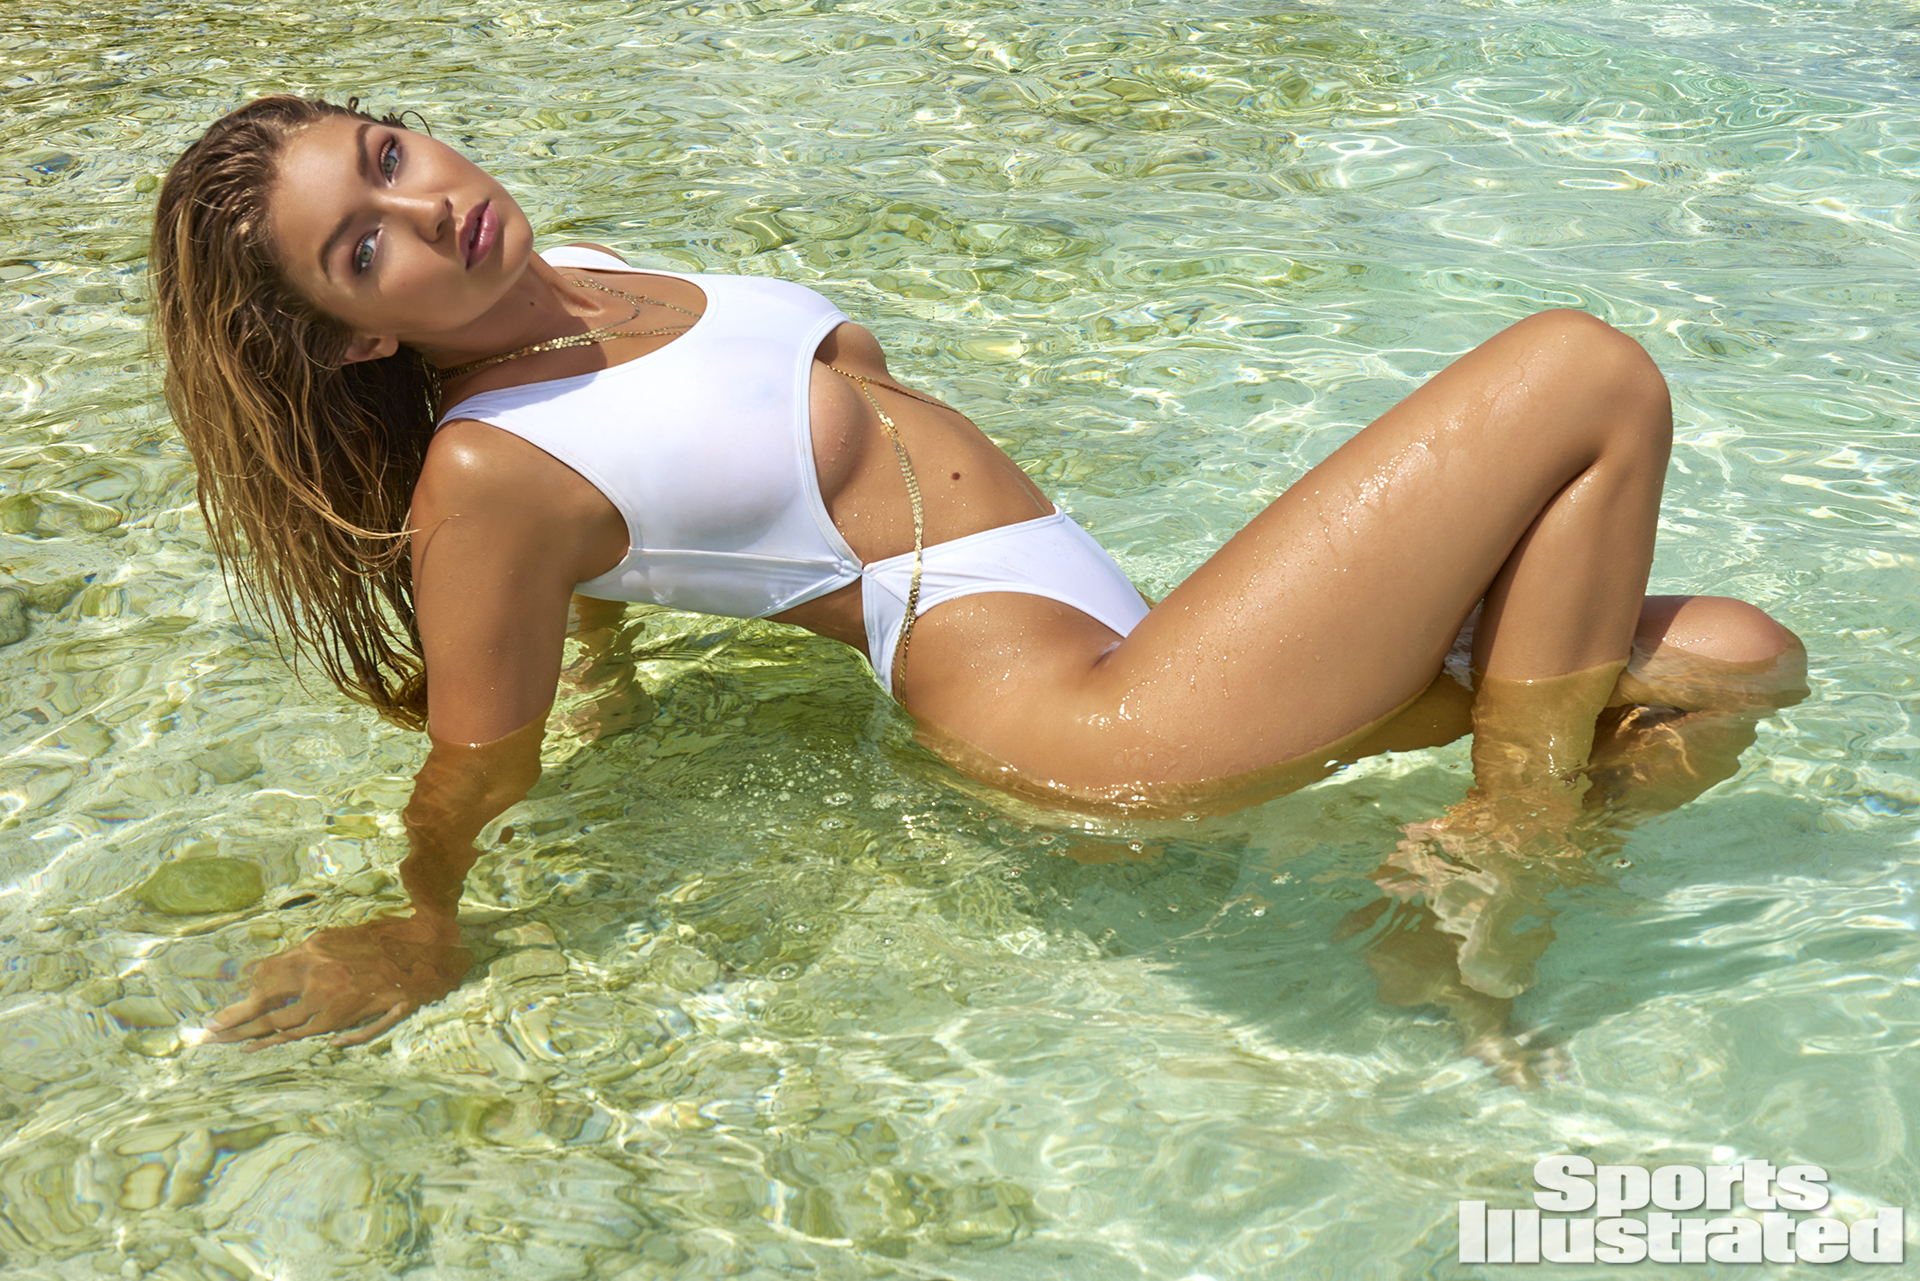 Gigi Hadid was photographed by Yu Tsai in The Islands Of Tahiti. Swimsuit by Lola & Lamar.